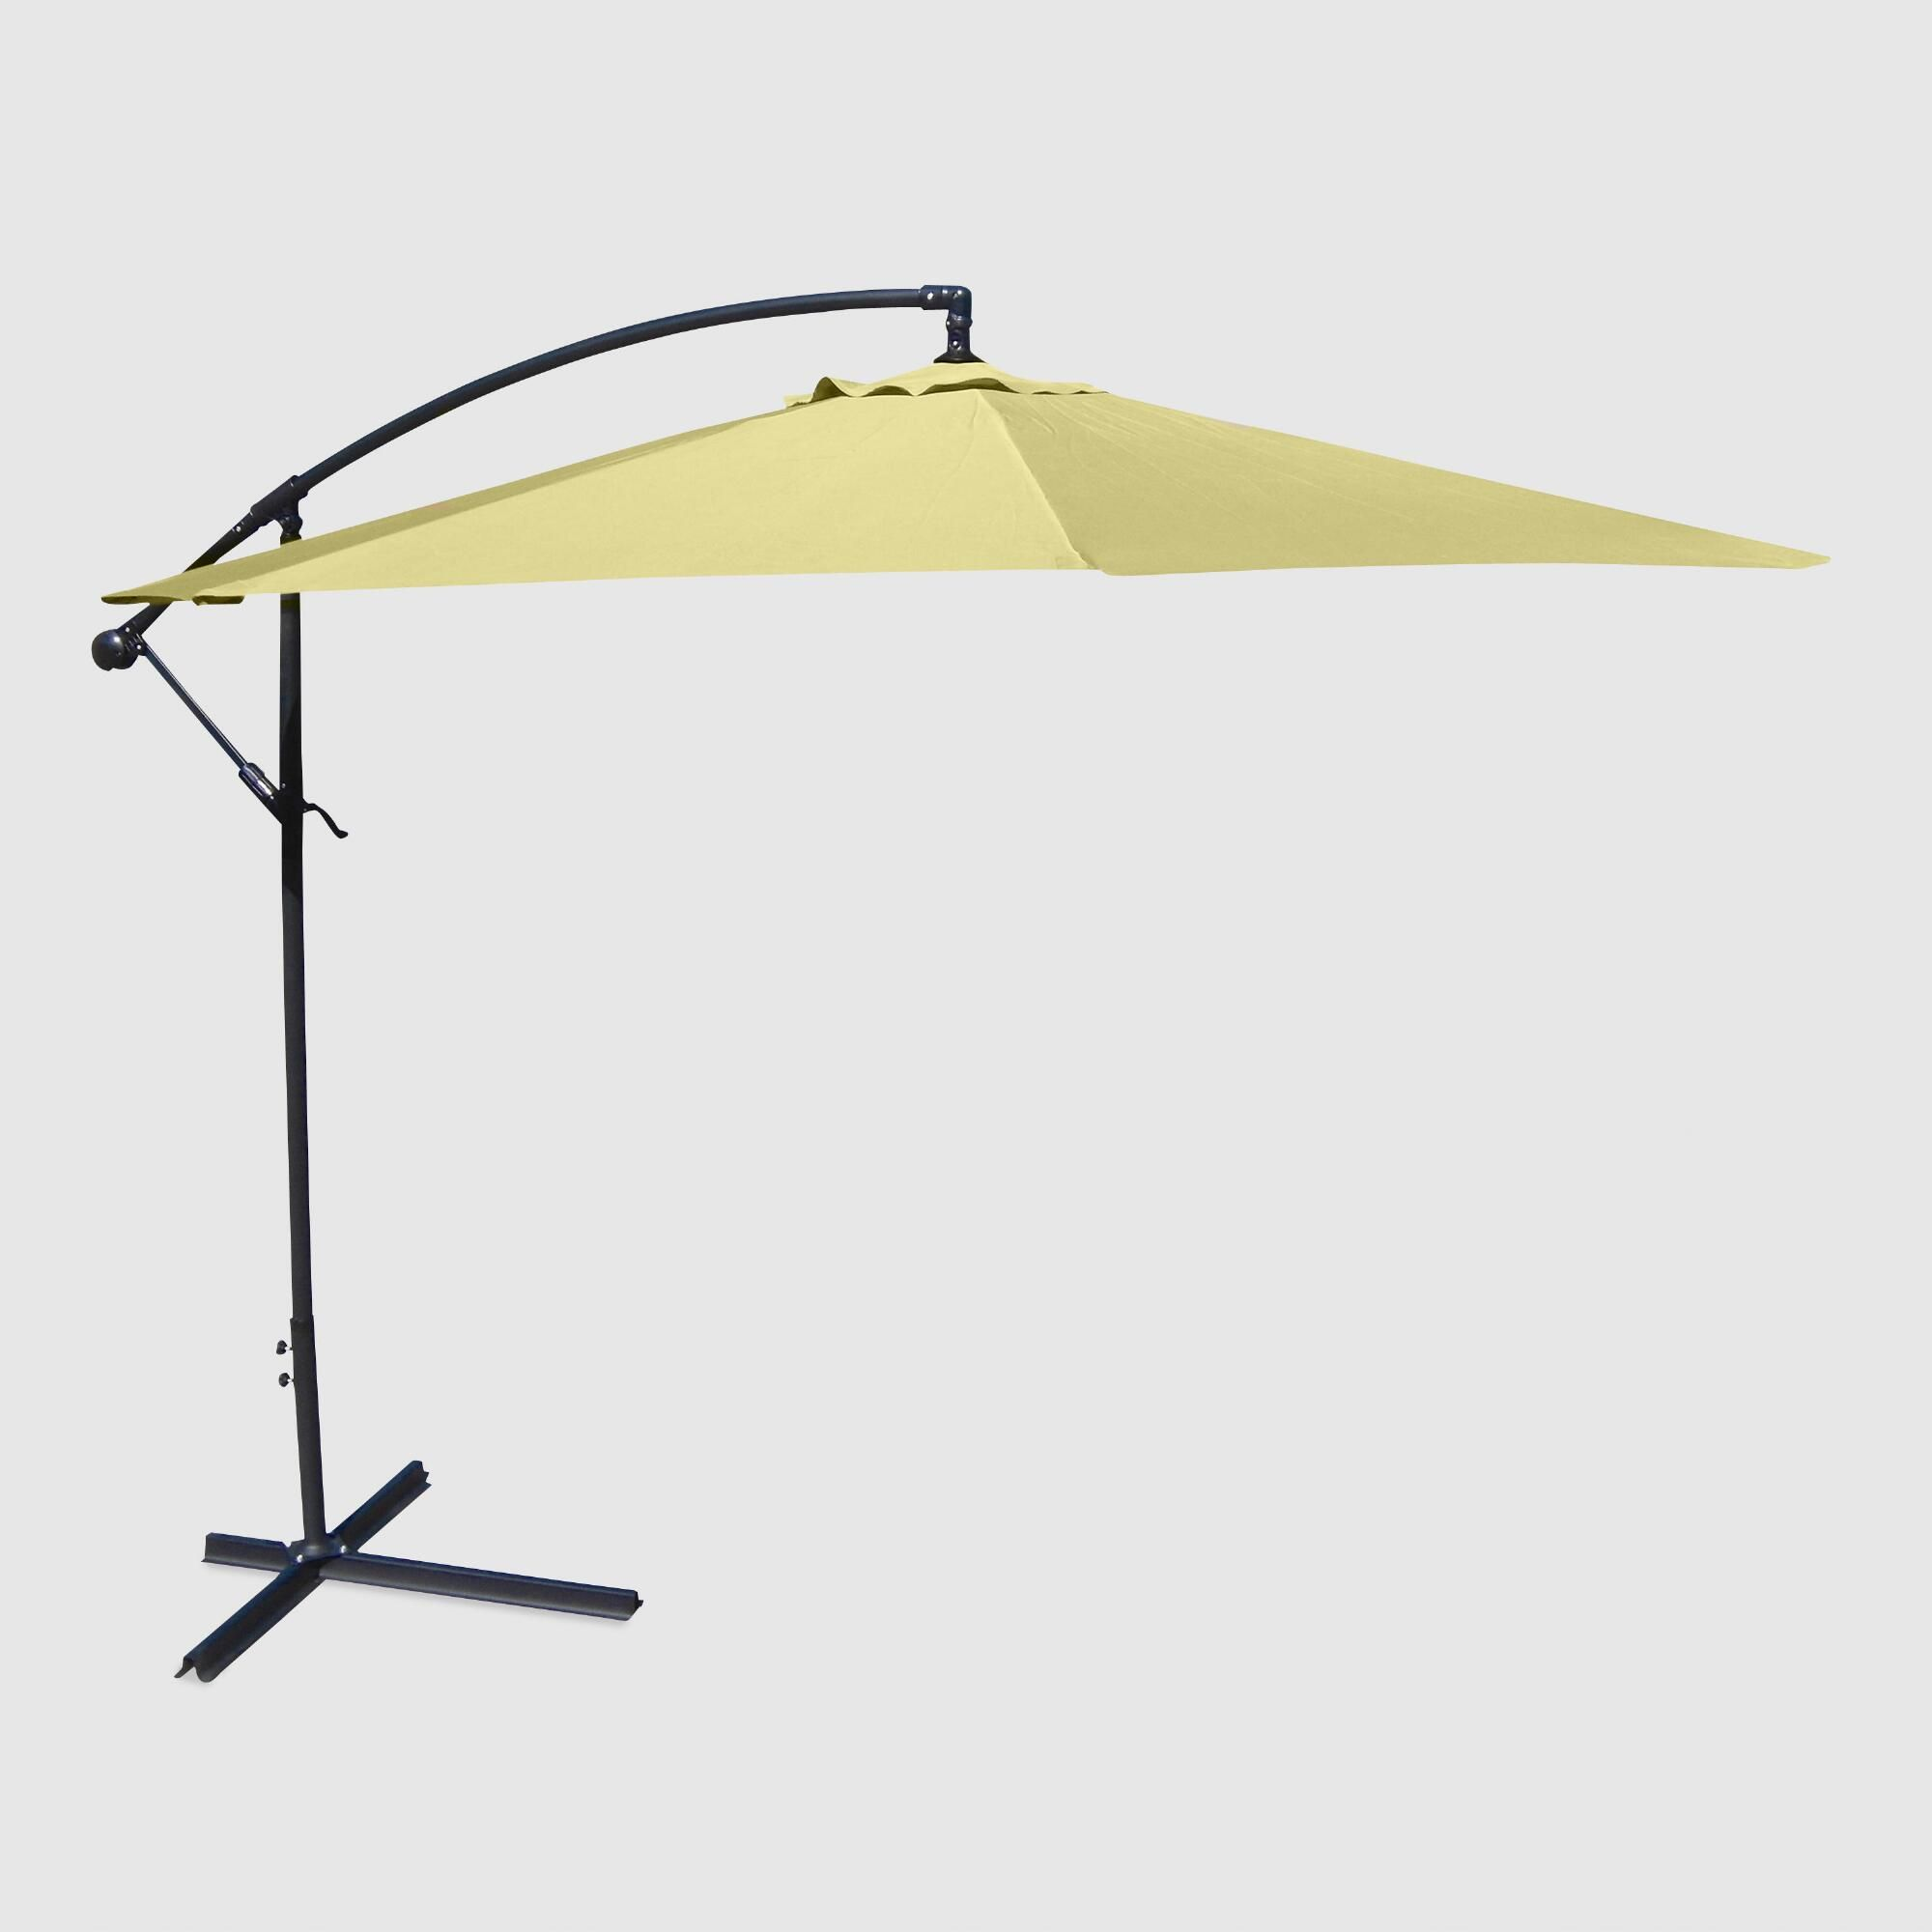 Canary Yellow 10 Ft Cantilever Outdoor Patio Umbrella Fabric By World Market Products Outdoor Patio Umbrellas Cantilever Umbrella Outdoor Umbrella